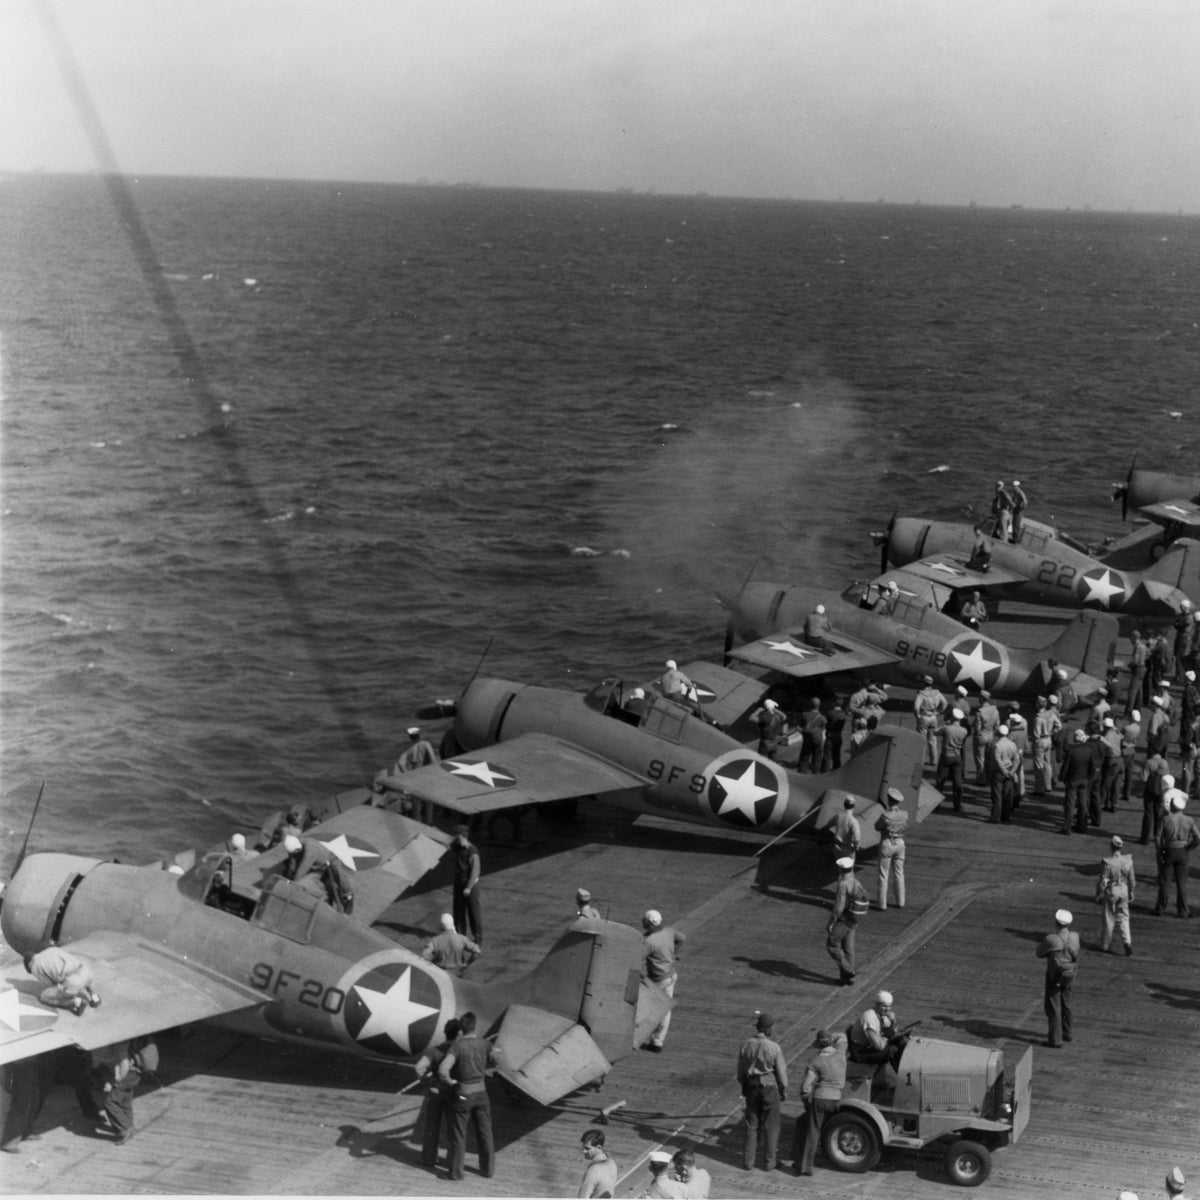 "U.S. Navy Grumman F4F-4 Wildcat fighters of Fighting Squadron 9 (VF-9) and VF-41, Carrier Air Group Four (CVG-4), testing guns aboard the aircraft carrier USS Ranger (CV-4) in early November 1942, prior to taking part in ""Operation Torch"", the Allied invasion of North Africa."